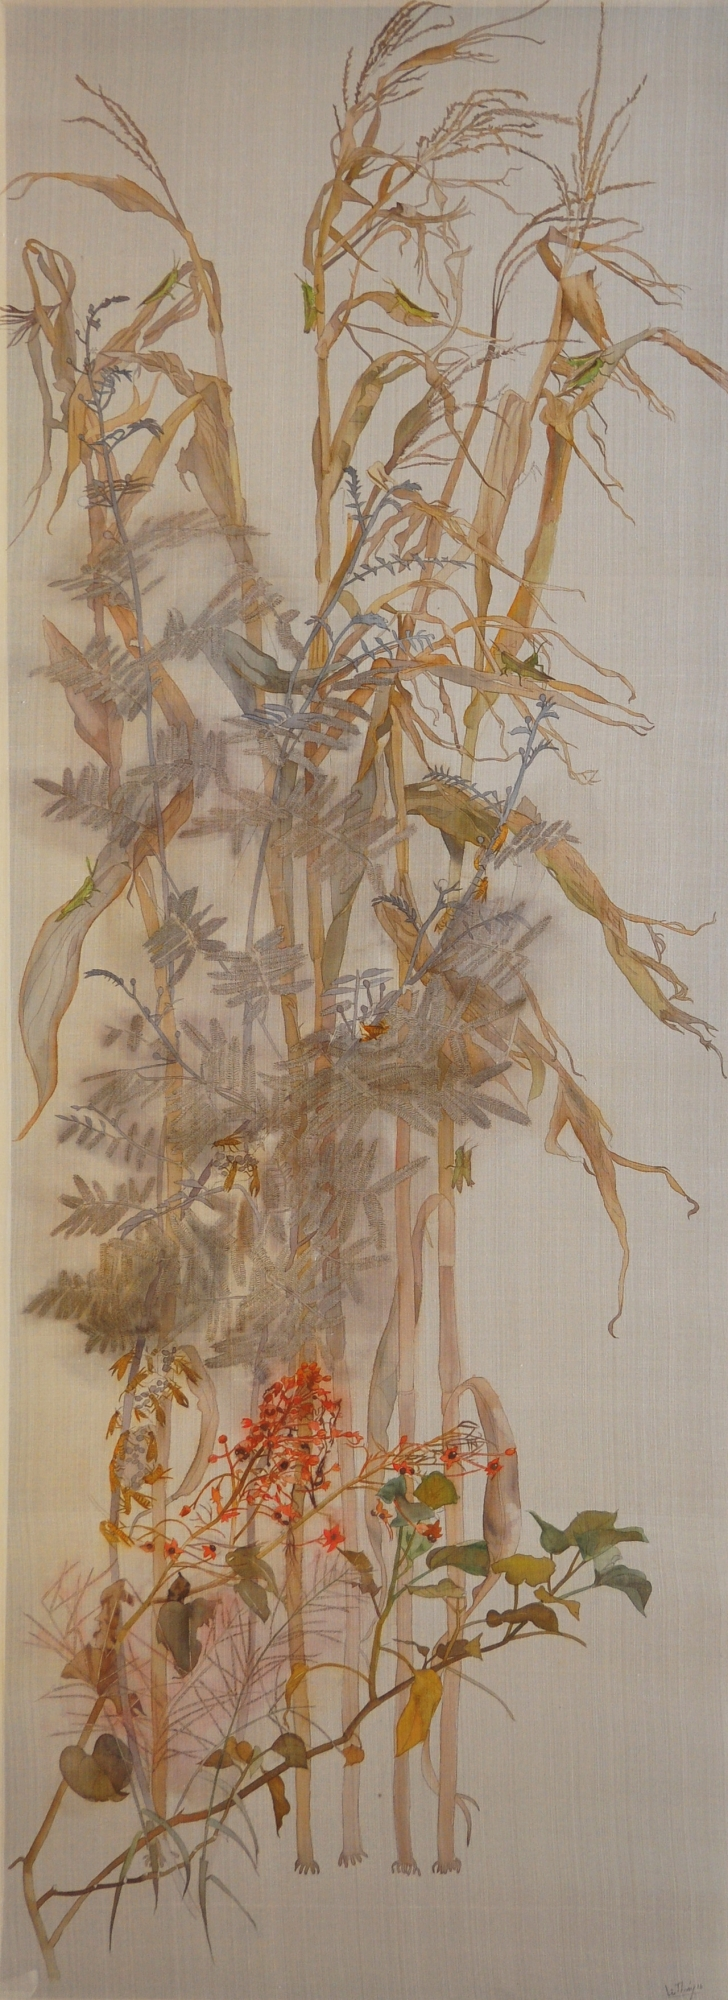 le-thuy_walking-in-the-garden-iv_cuoc-dao-choi-trong-vuon-iv_2016_watercolor-on-silk-_170-x-62-cm-e1475503788829